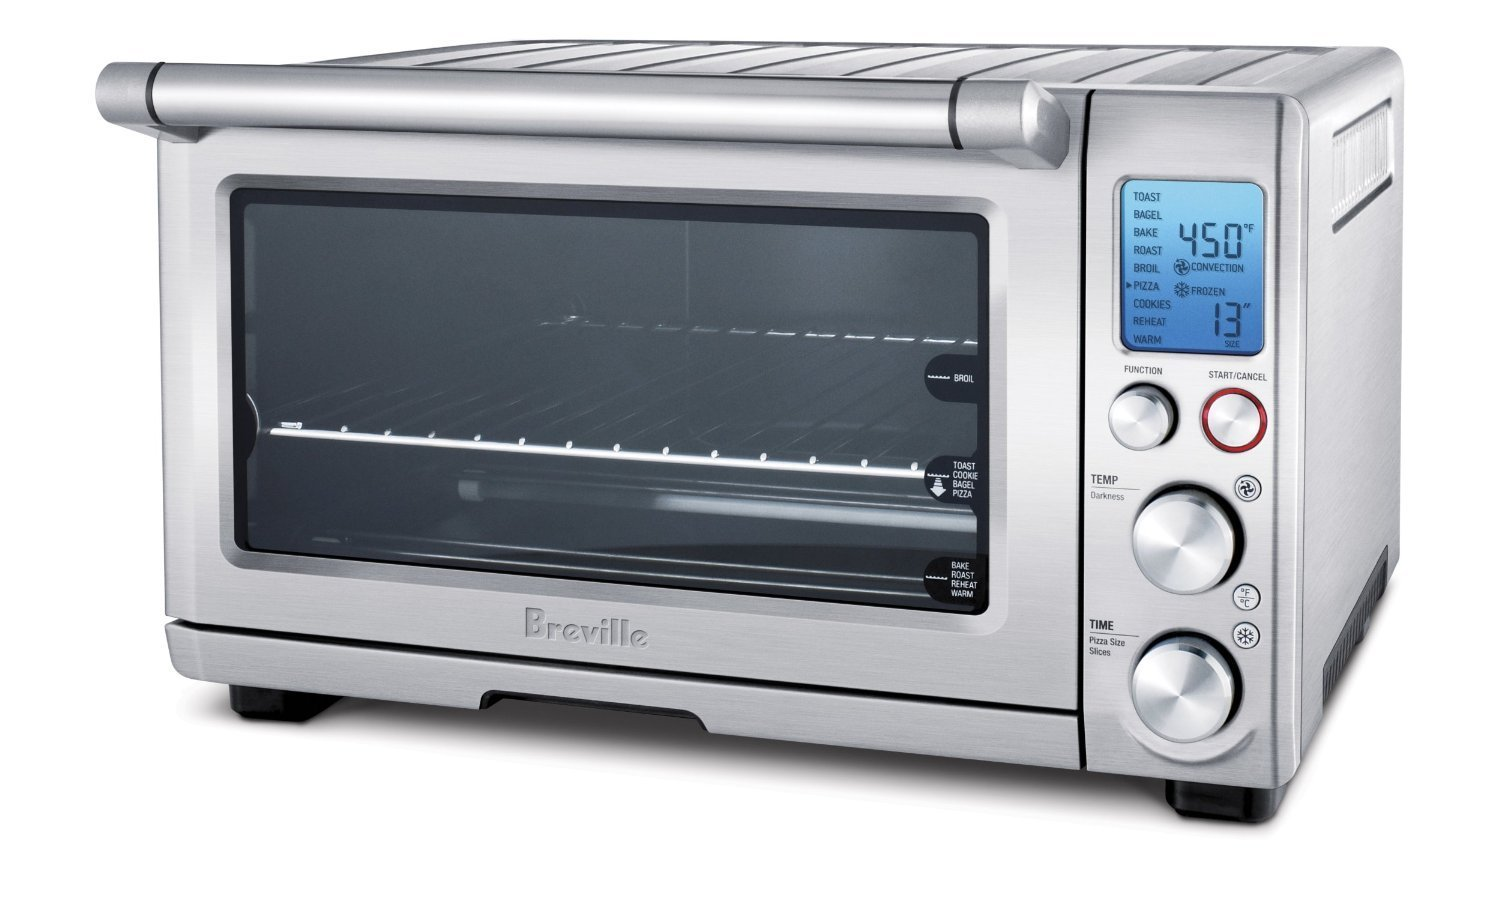 Breville bov 800 xl smart oven 1800 watt convection toaster oven